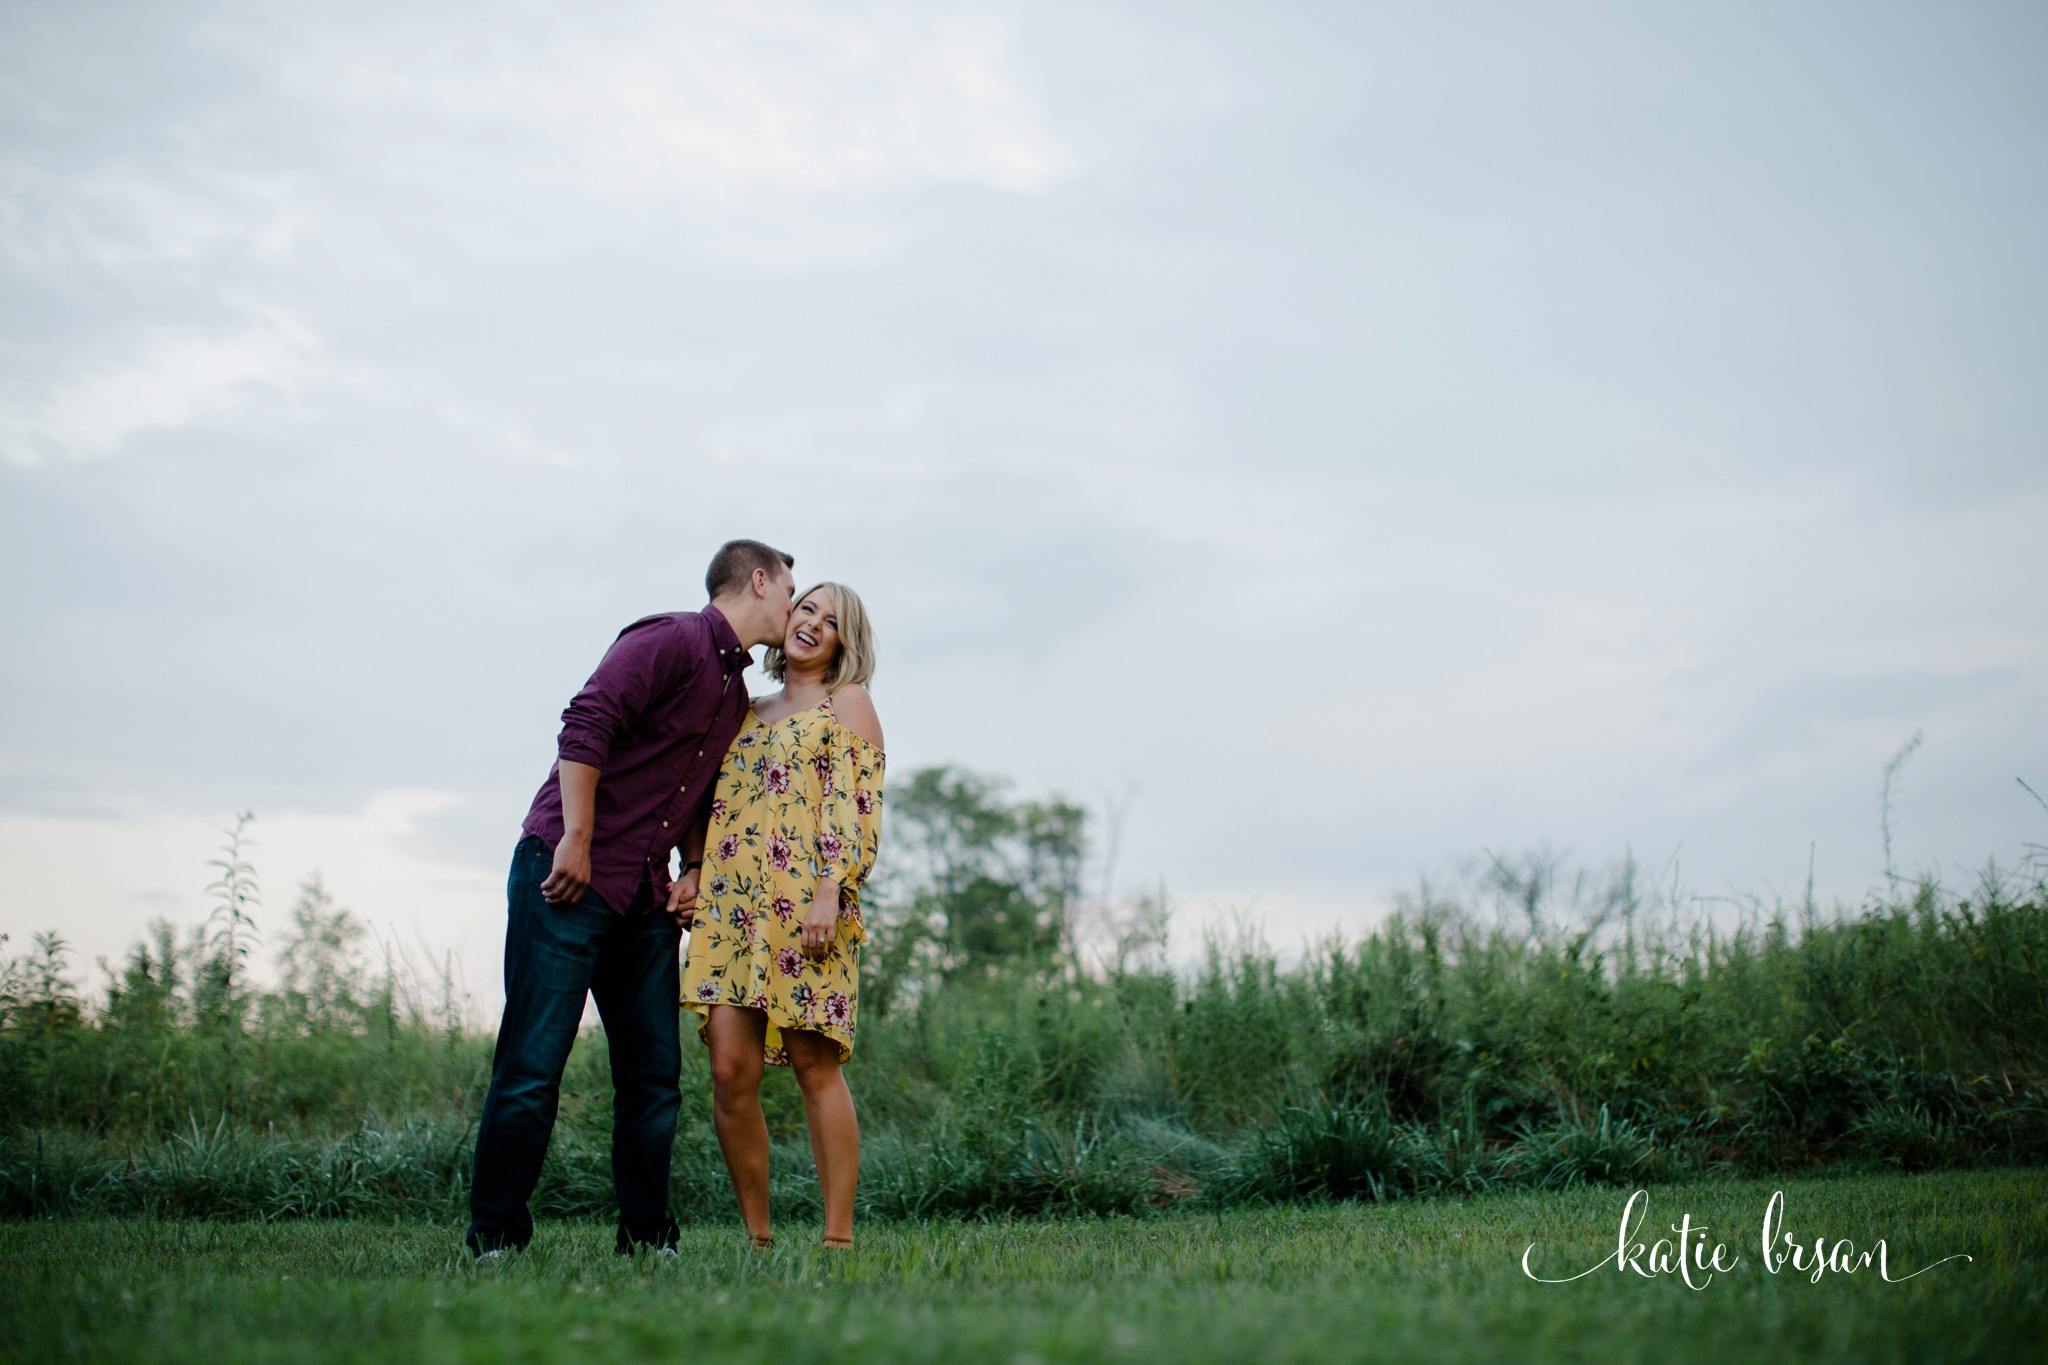 Mokena_Engagement_Session_CDandMe_Wedding_0027.jpg